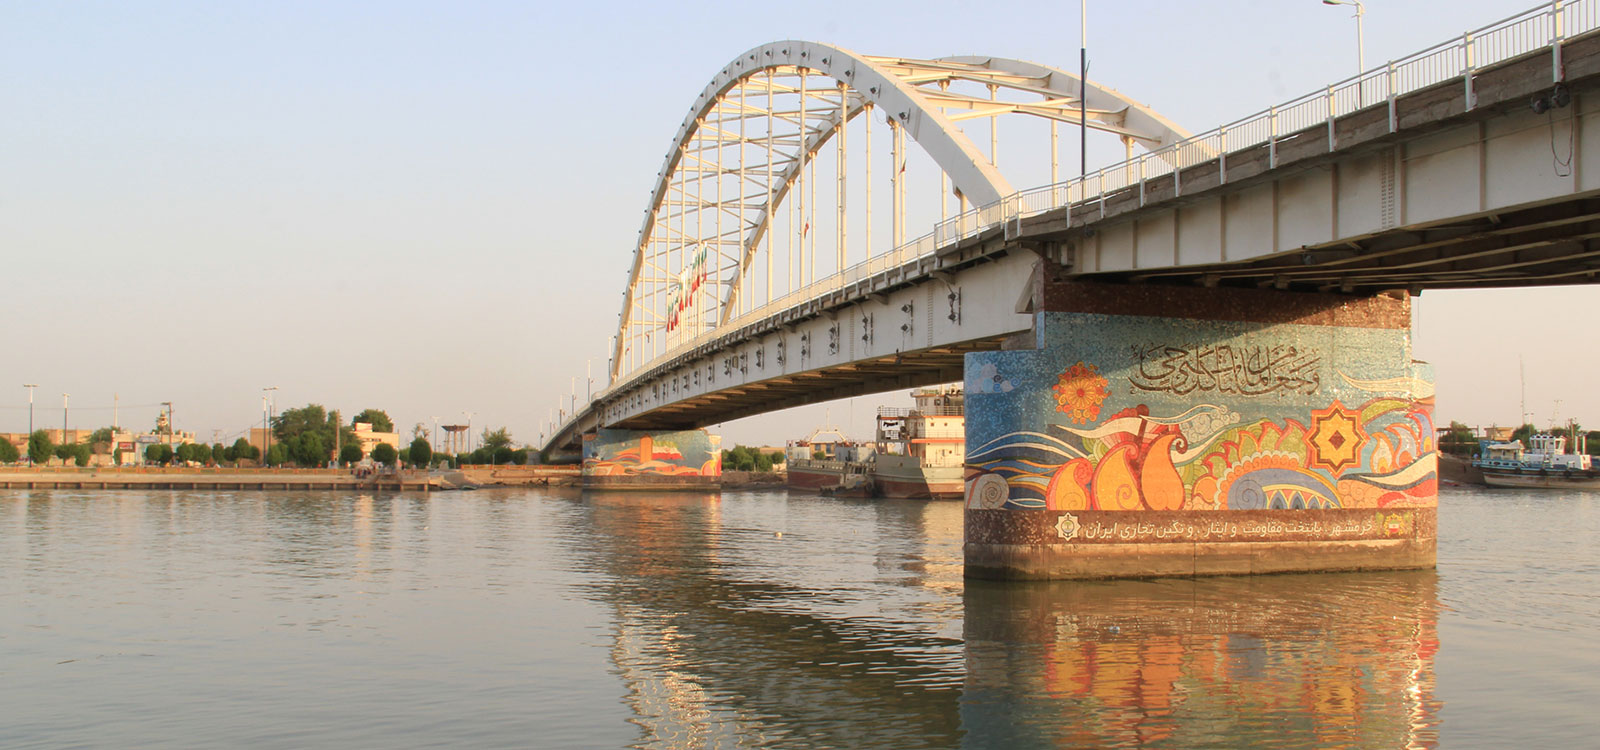 Jahan Ara river Bridge